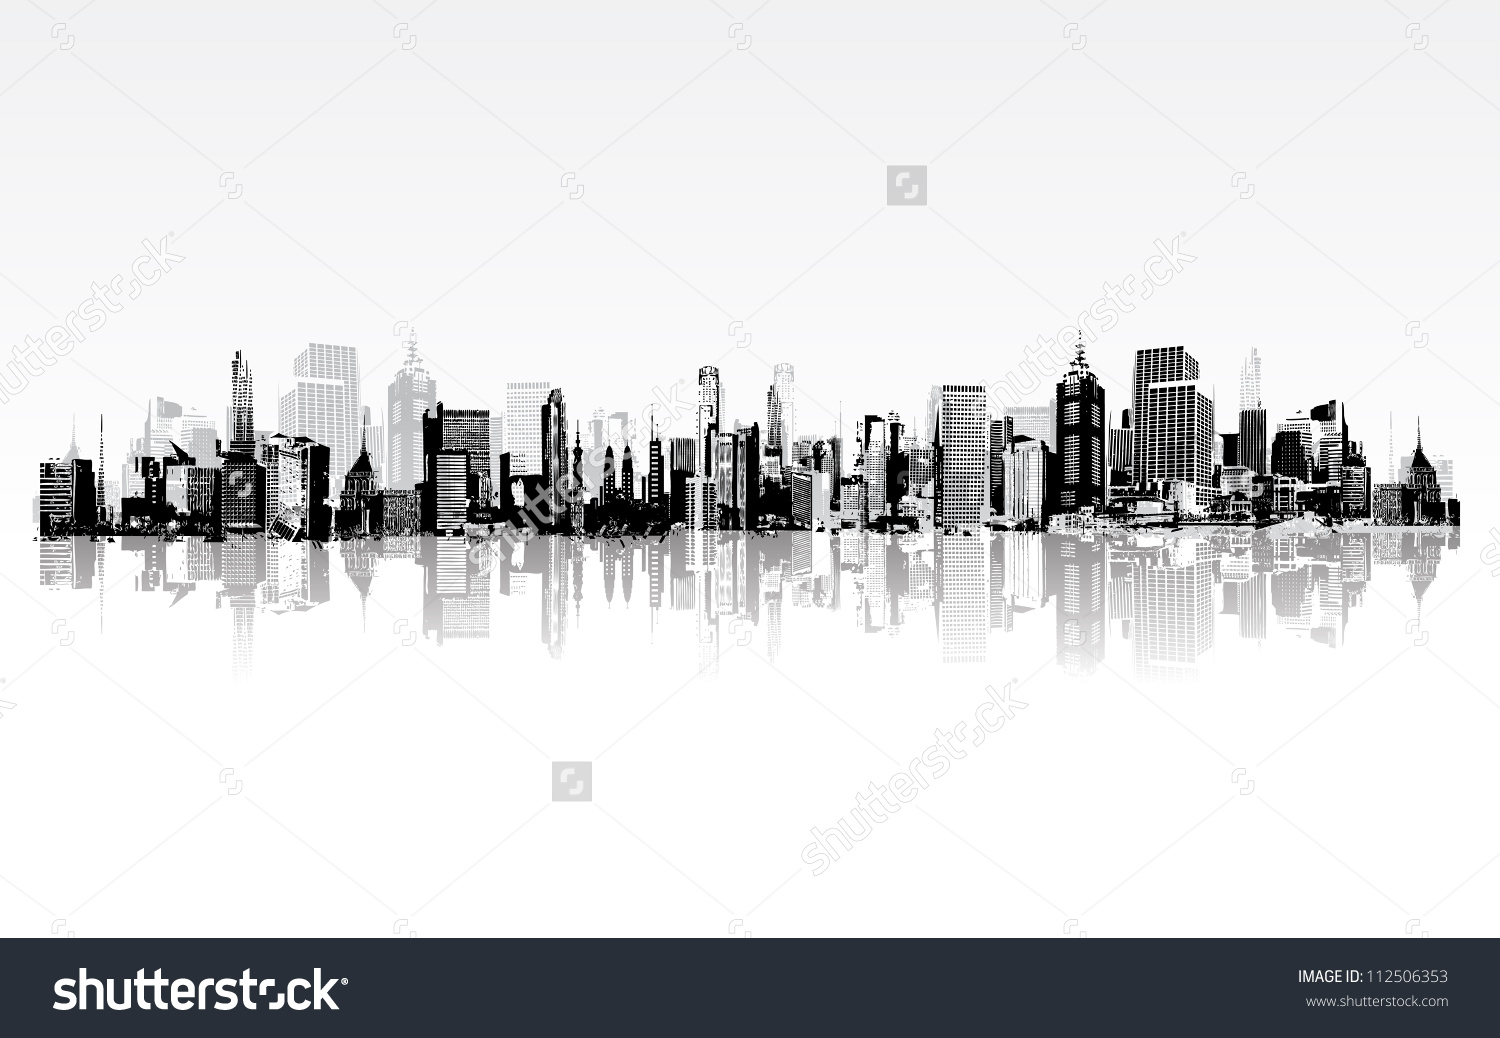 Illustration Architectural Building Panoramic View Stock Vector.